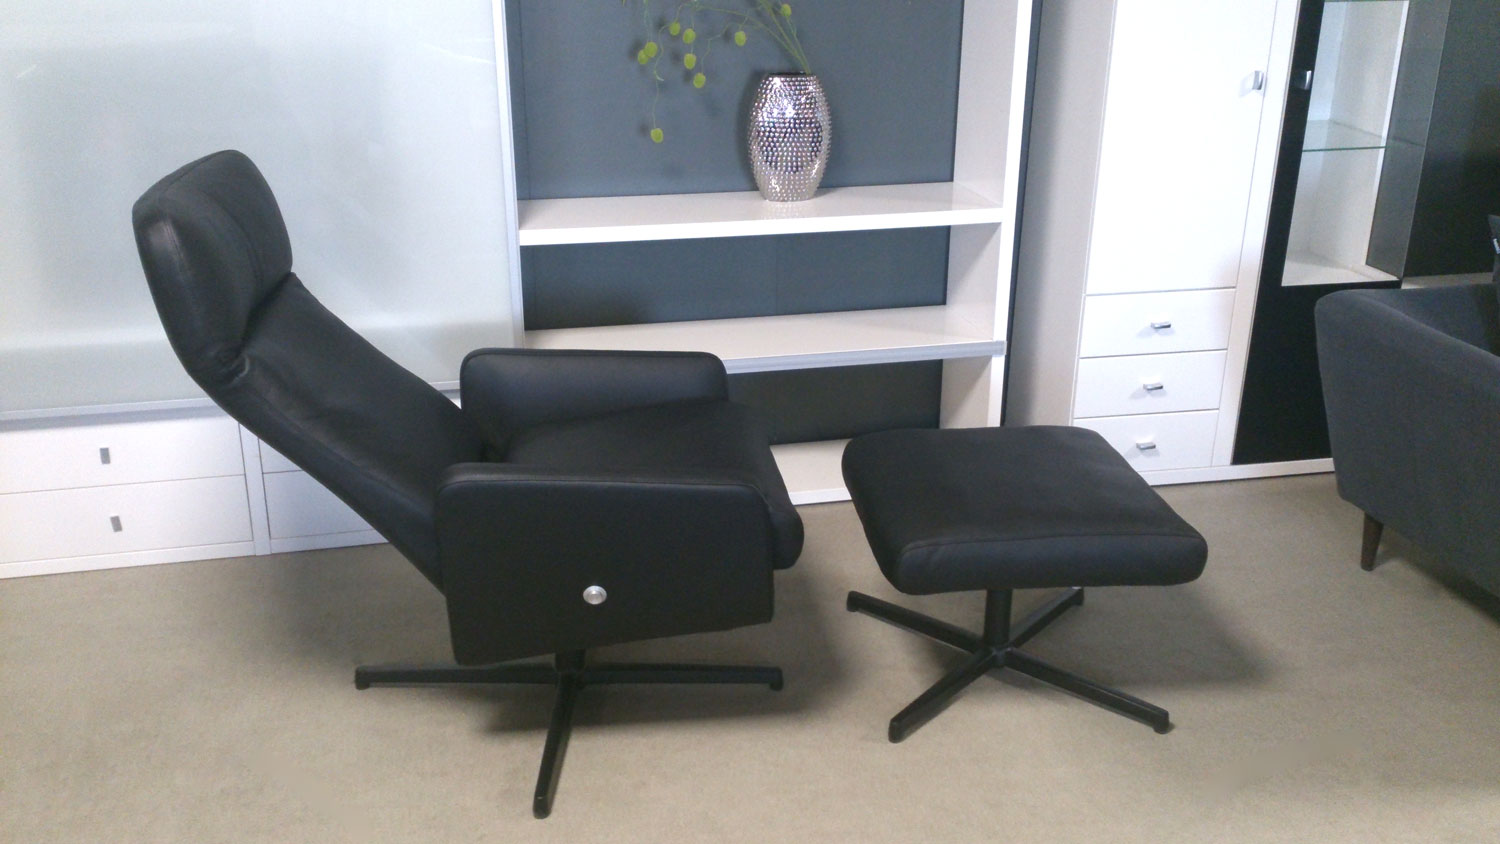 Rolf Benz Relaxfauteuil 577.Relaxsessel Rolf Benz